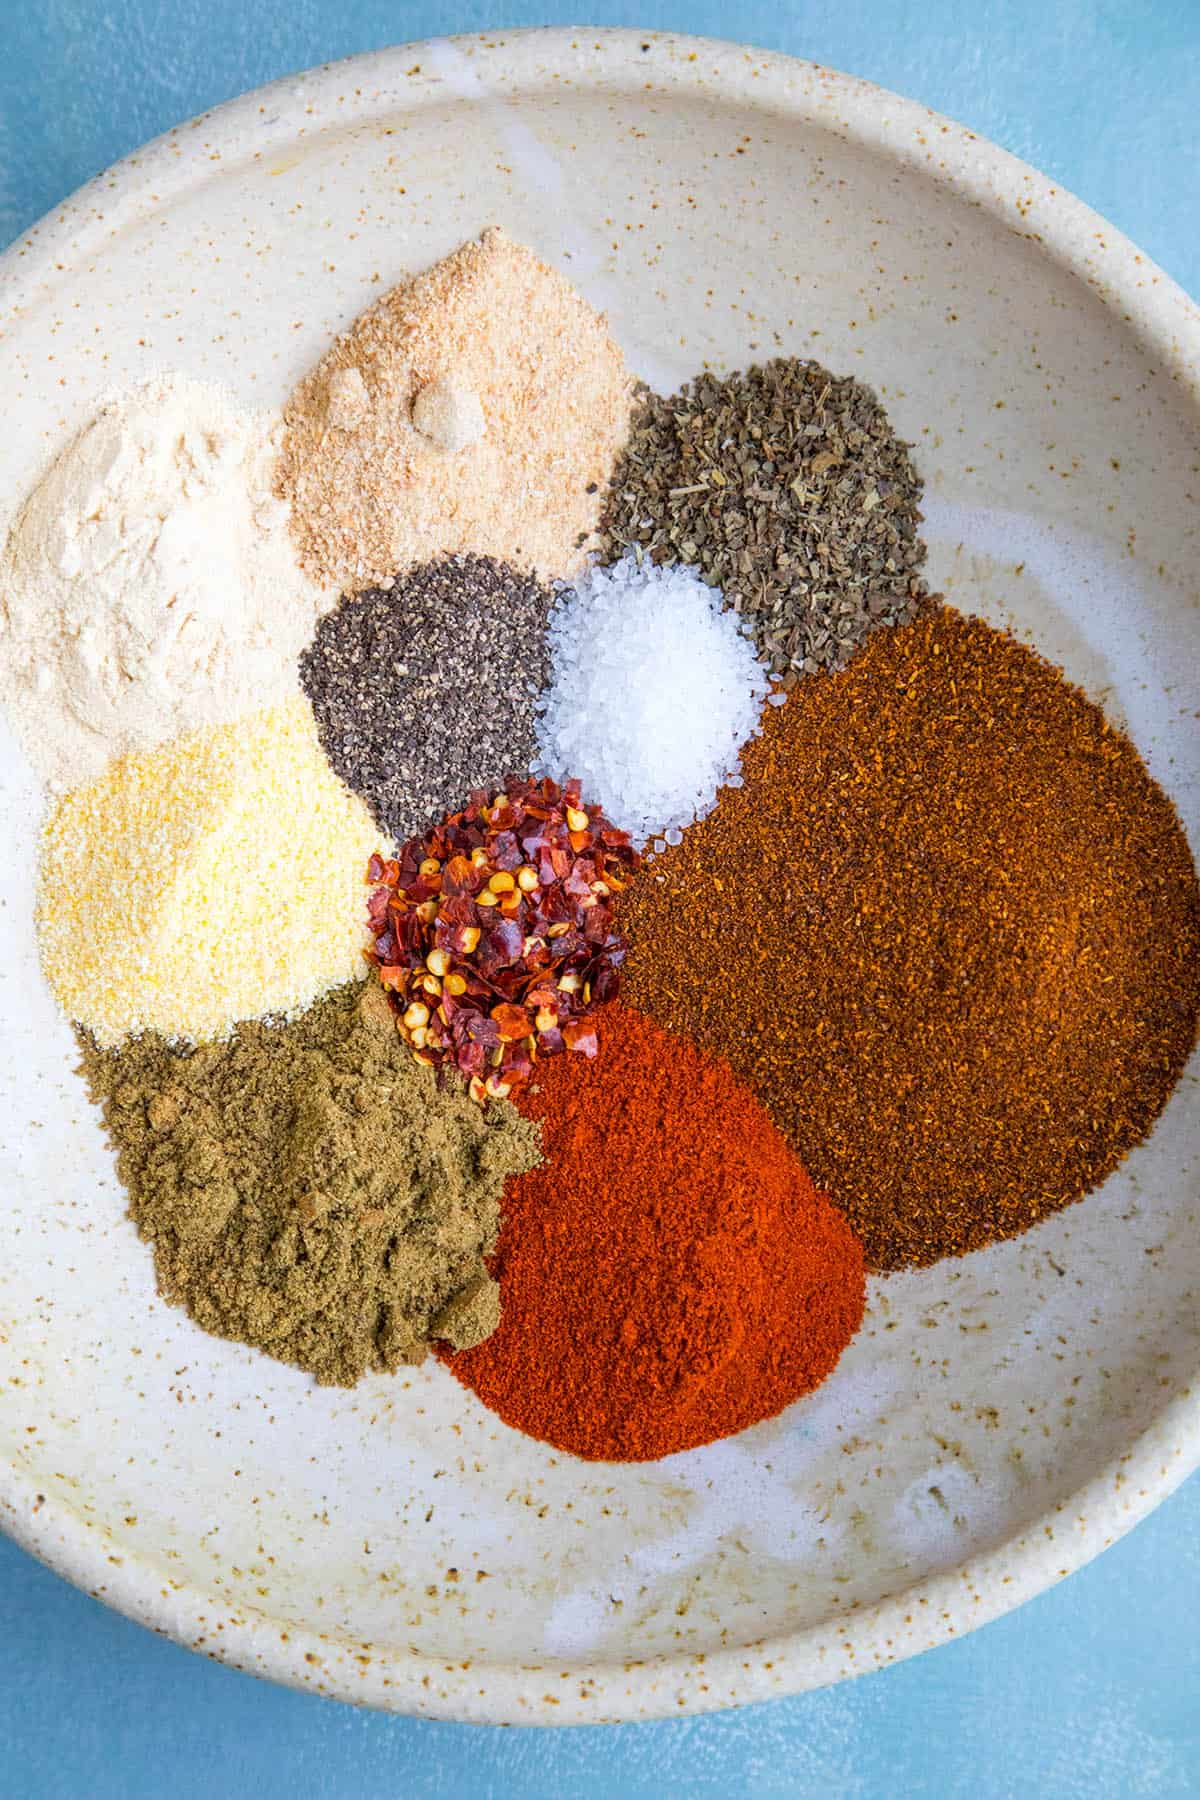 All of my Homemade Taco Seasoning Recipe ingredients in a bowl